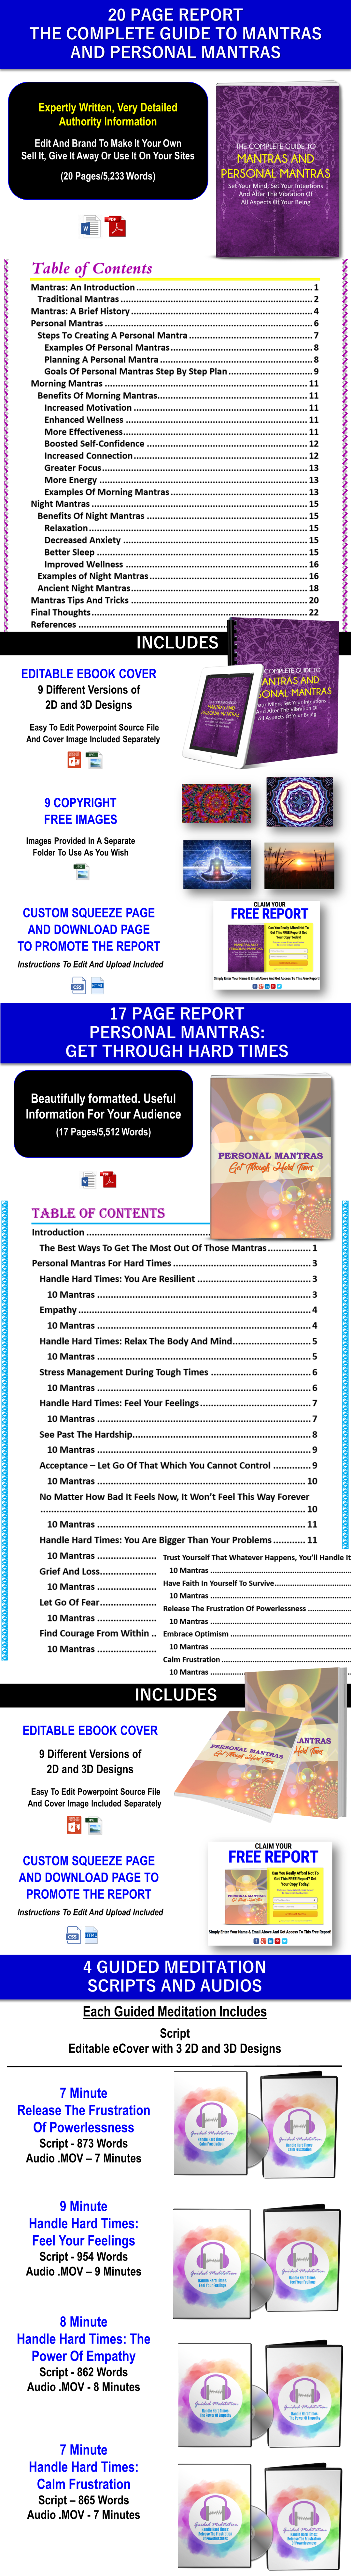 Mantras For Wellbeing Content With PLR Rights